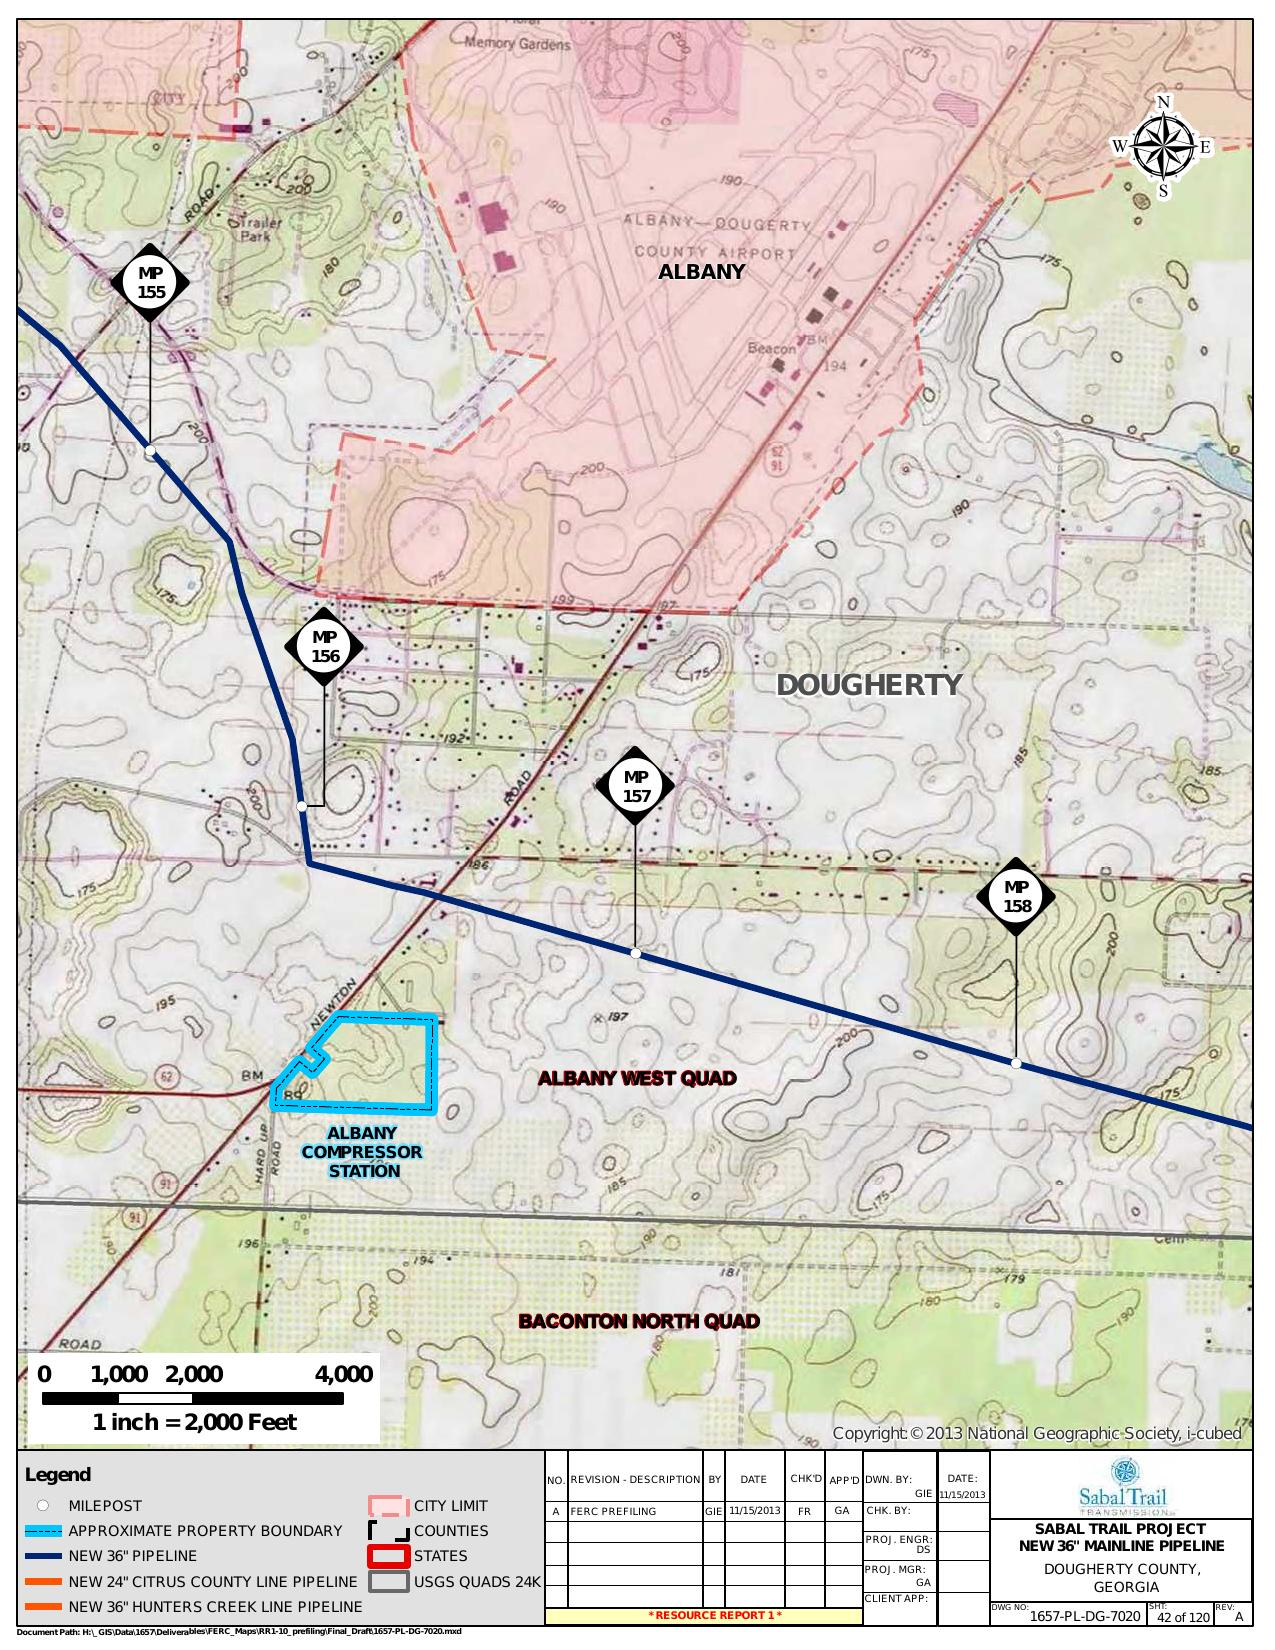 Albany Compressor Station, Dougherty County, Georgia, in General Project Description, by SpectraBusters, for FERC Docket No. PF14-1-000, 15 November 2013, converted by SpectraBusters